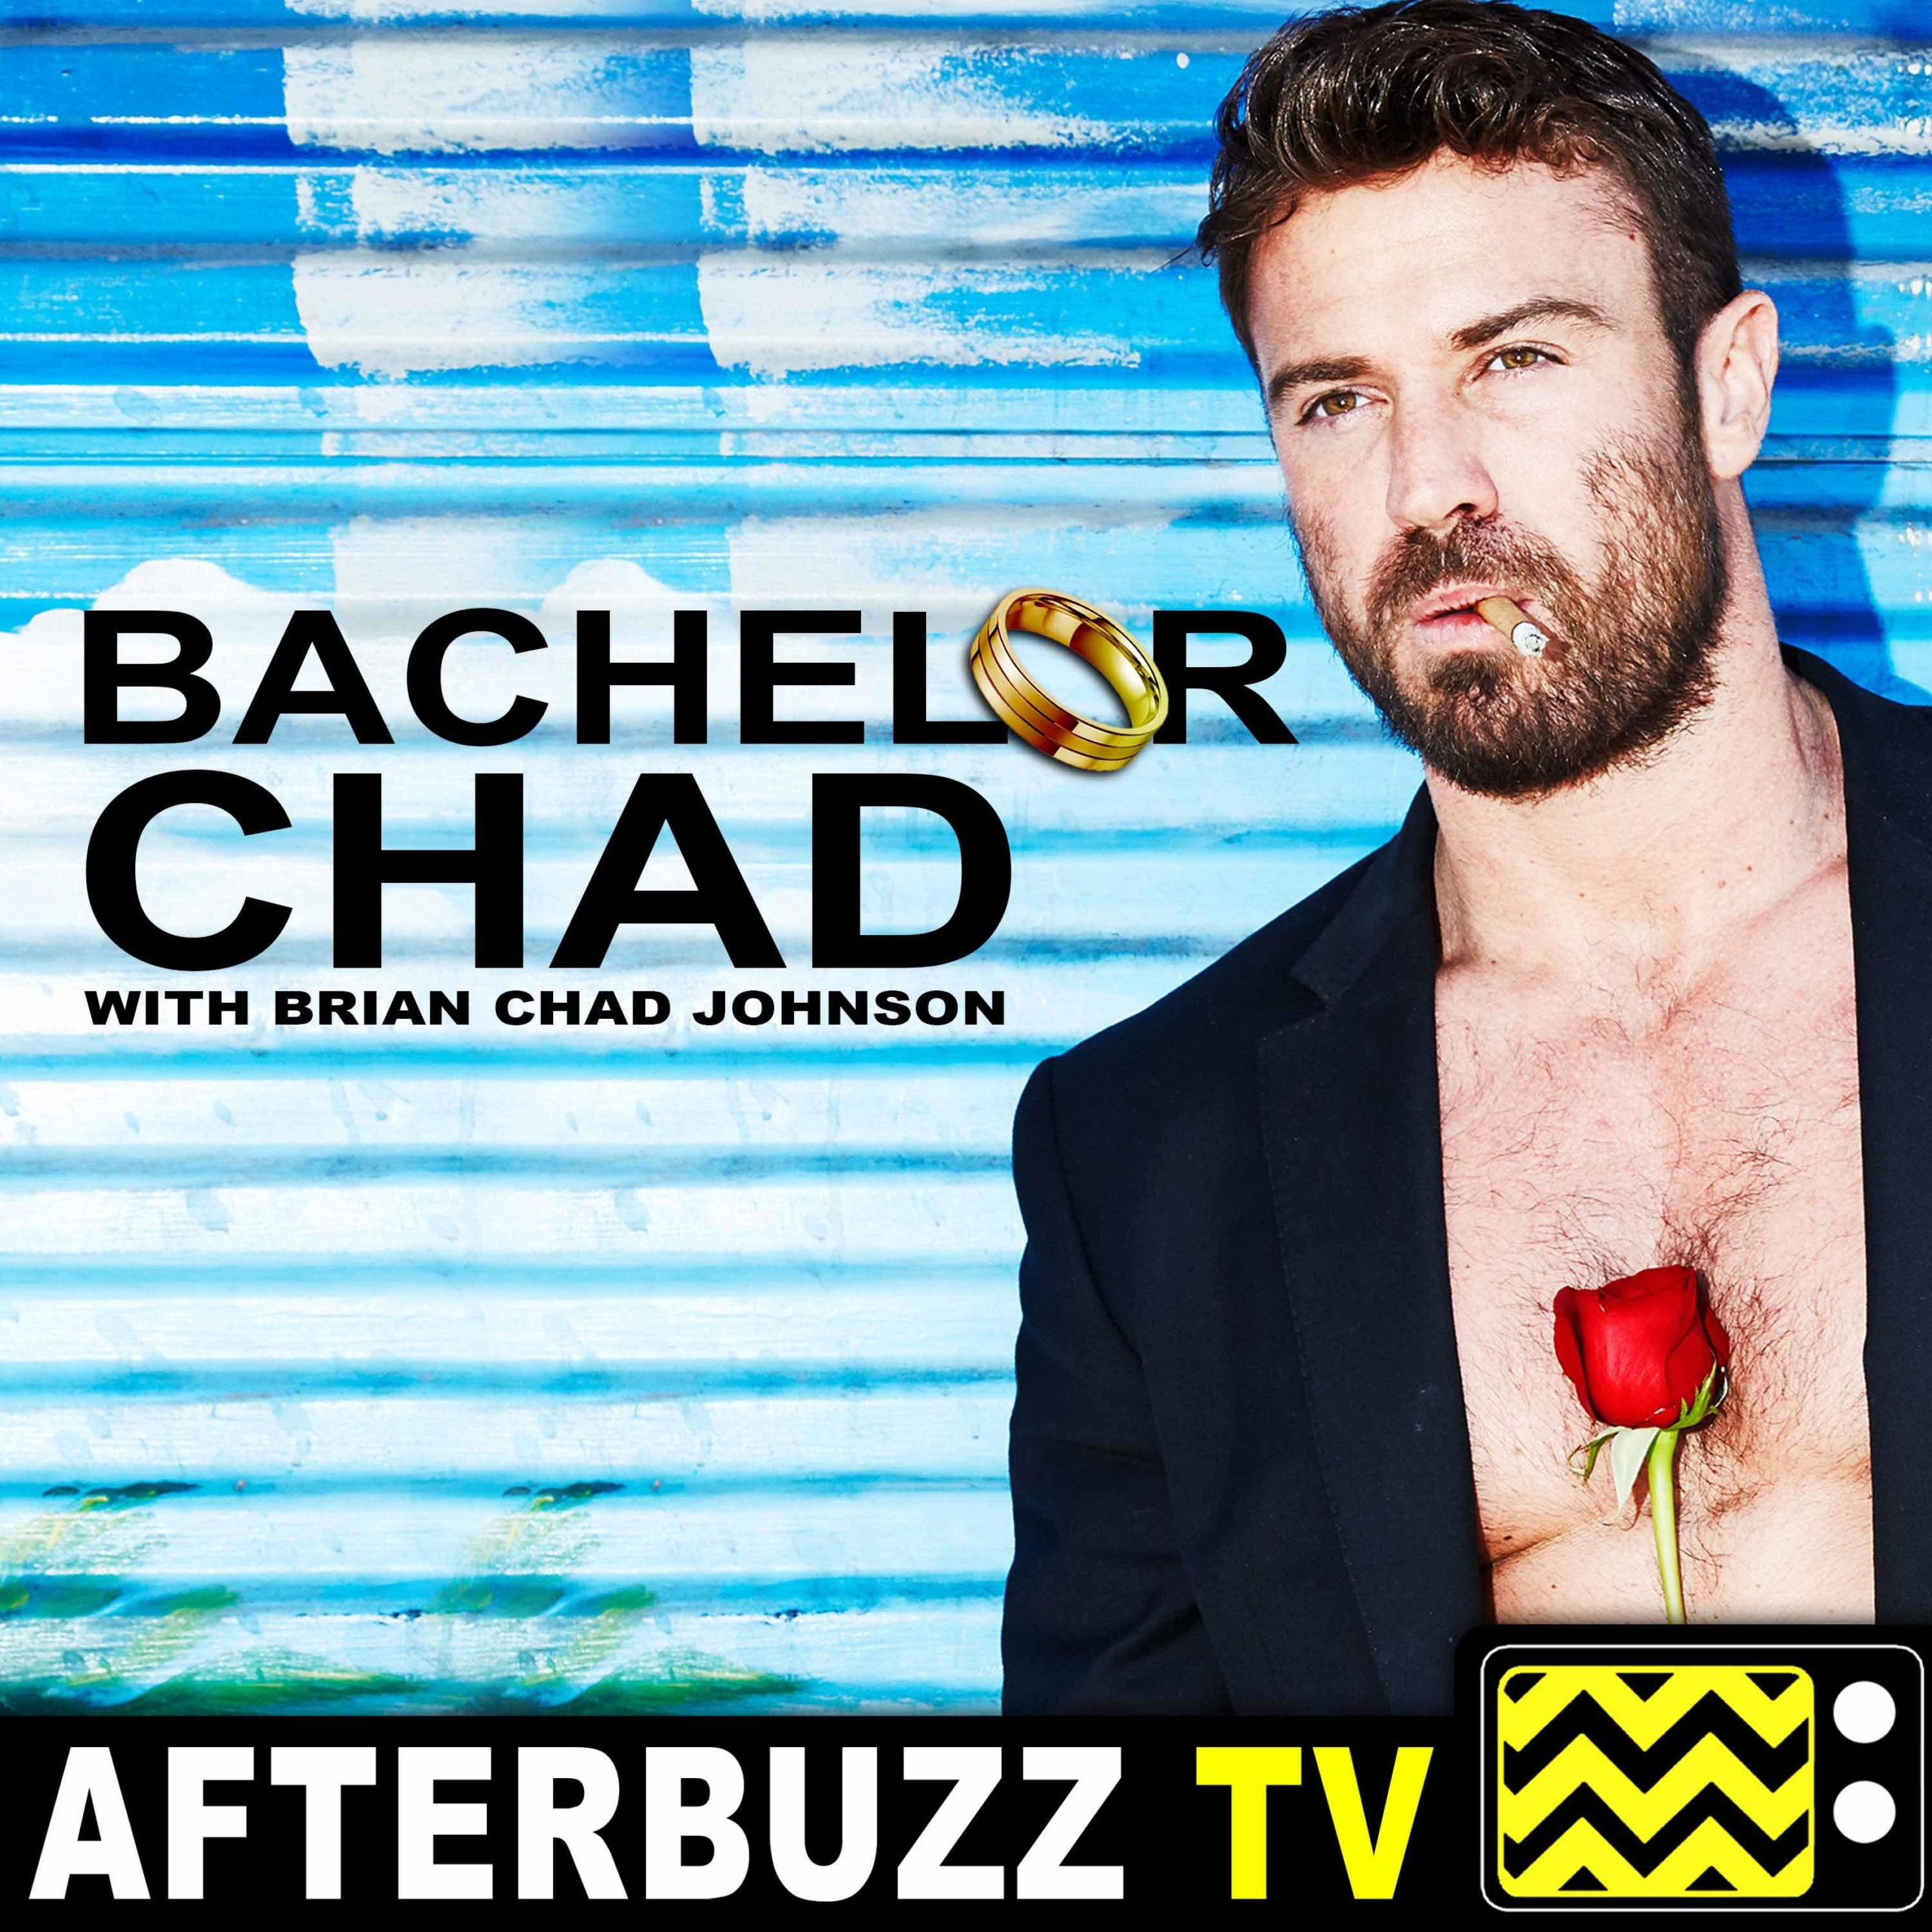 Bachelor Chad with Chad Johnson